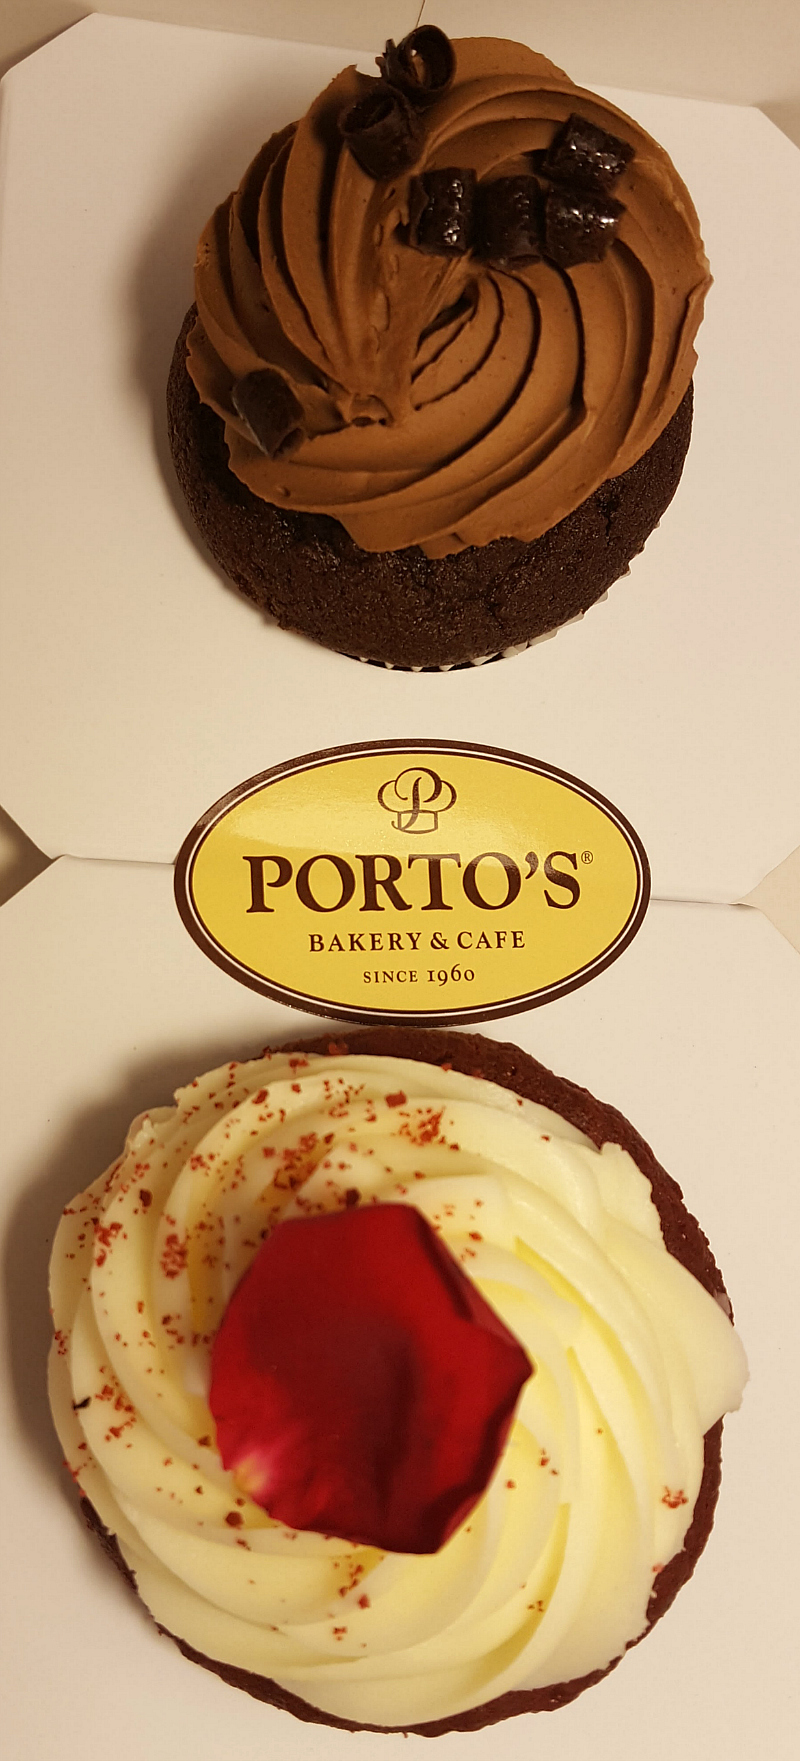 Porto's Bakery and Cafe Buena Park Cupcakes To Go